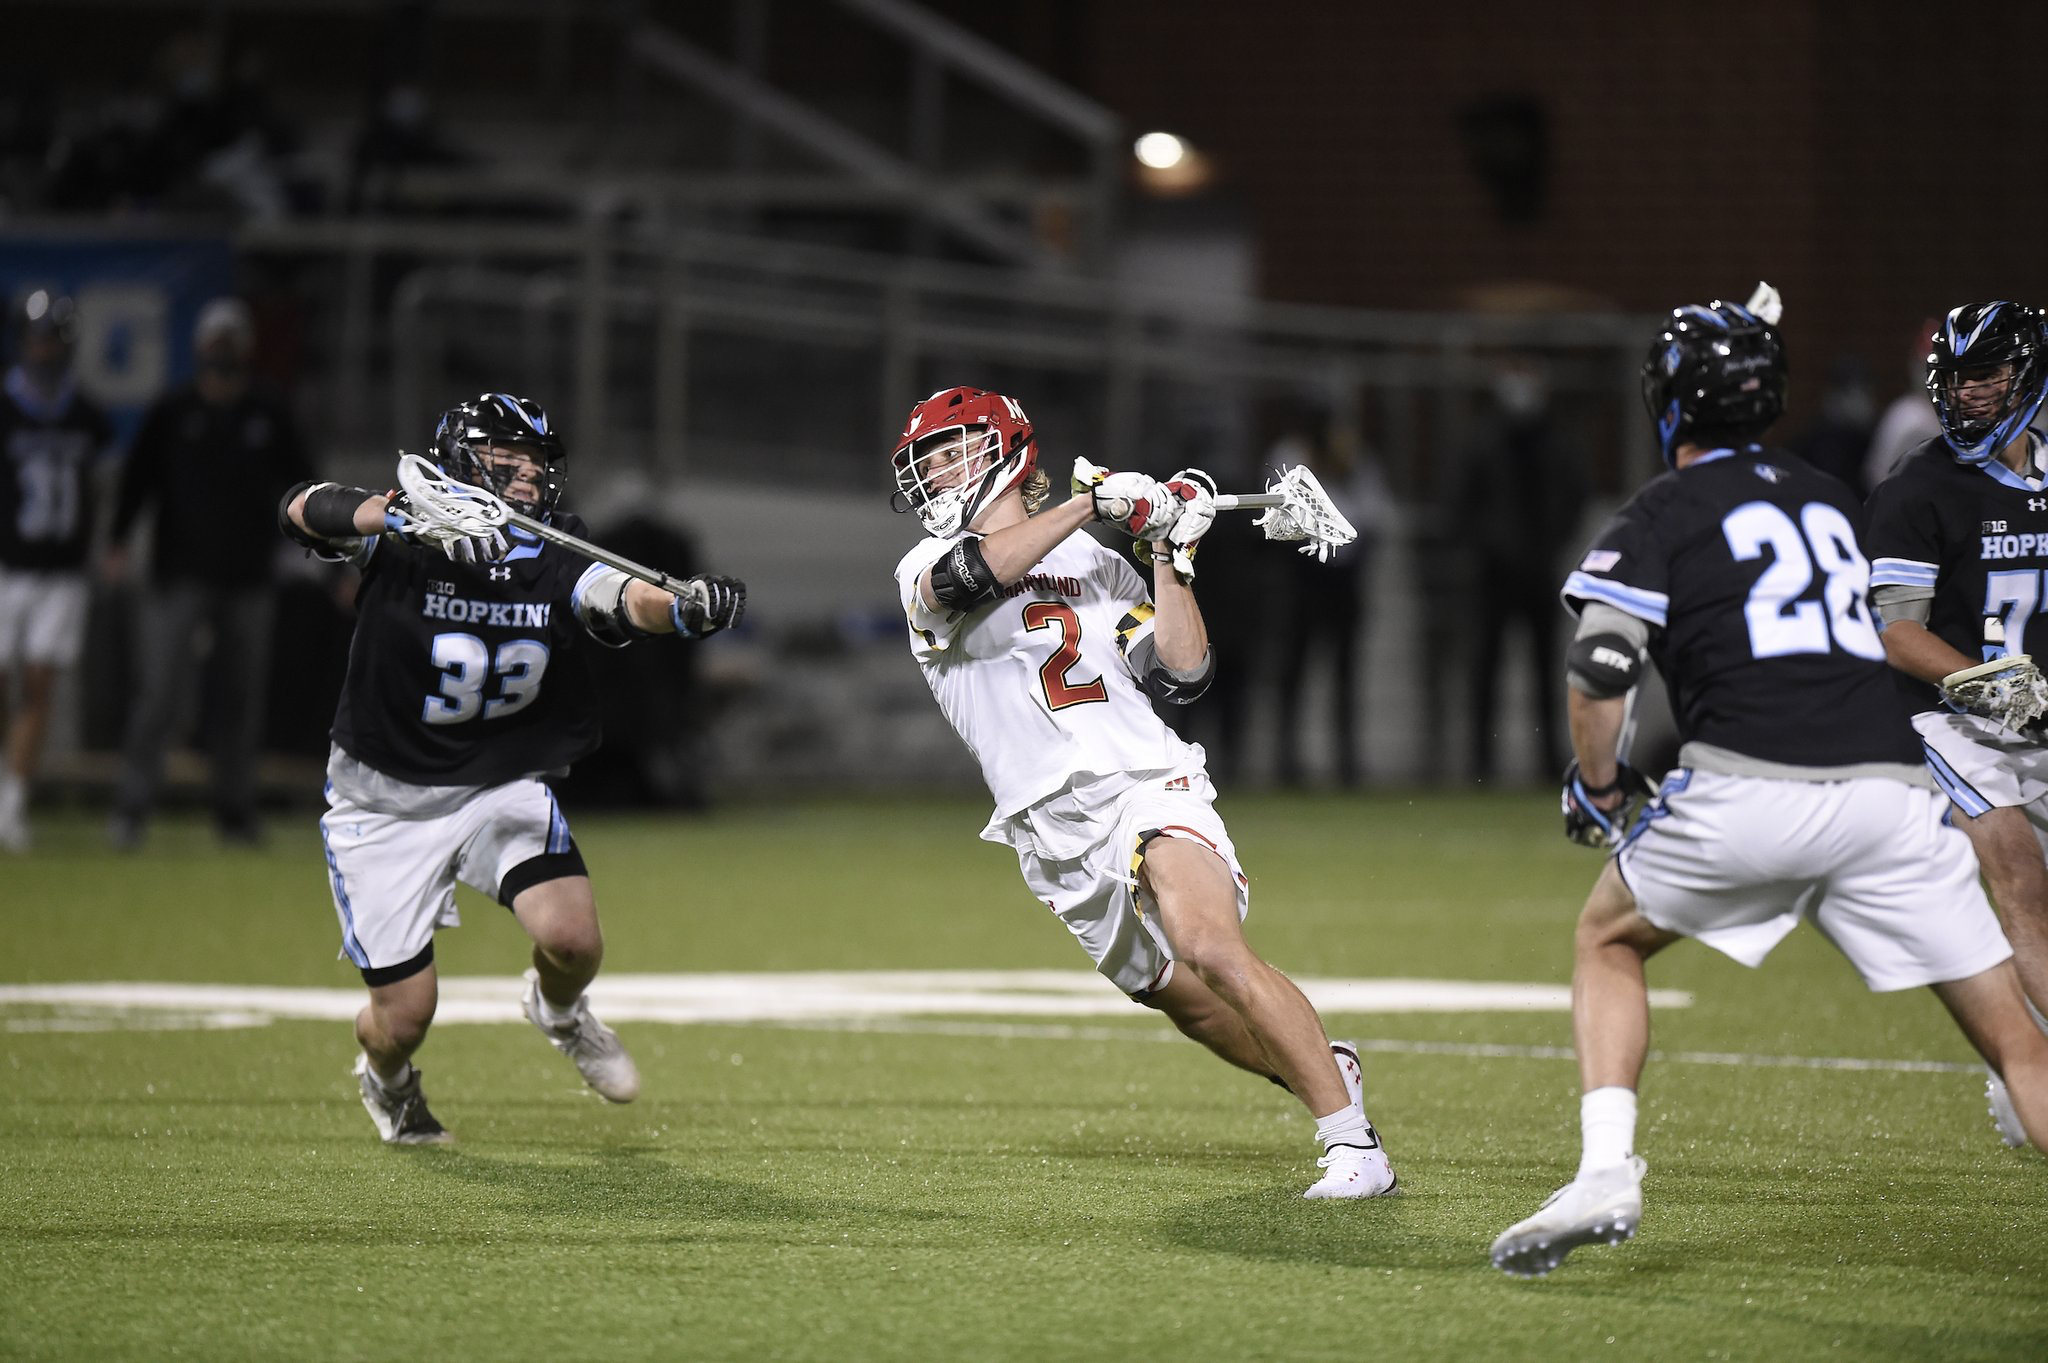 Maryland Avoids Upset, Tops Johns Hopkins to Claim Big Ten Title